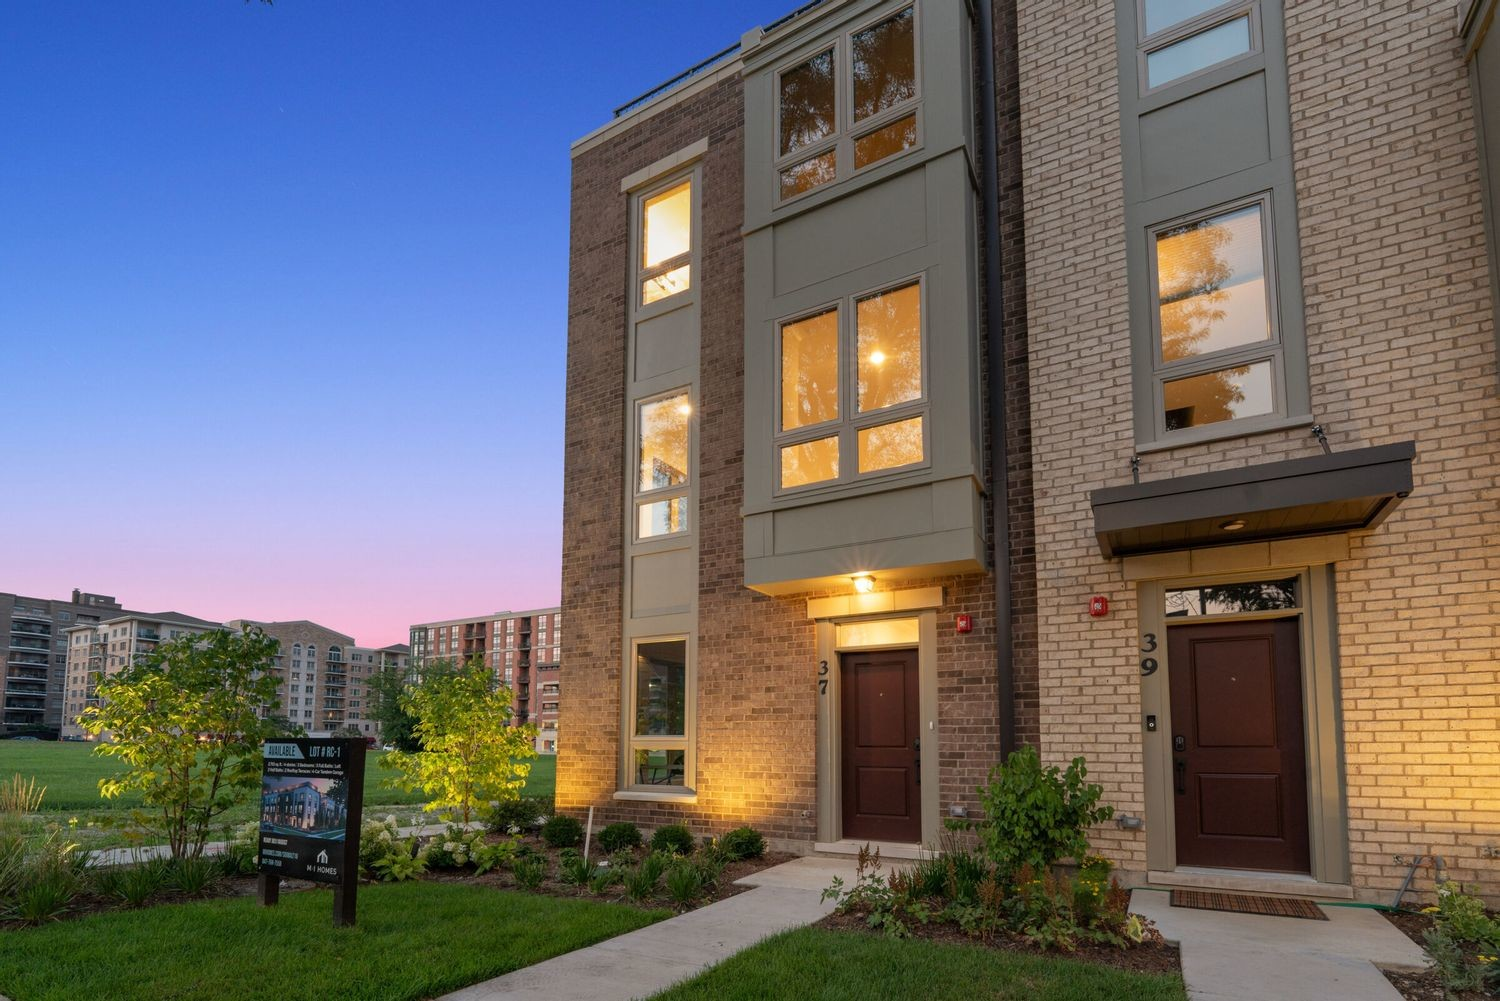 Move In Ready New Home In Sigwalt 16 Community